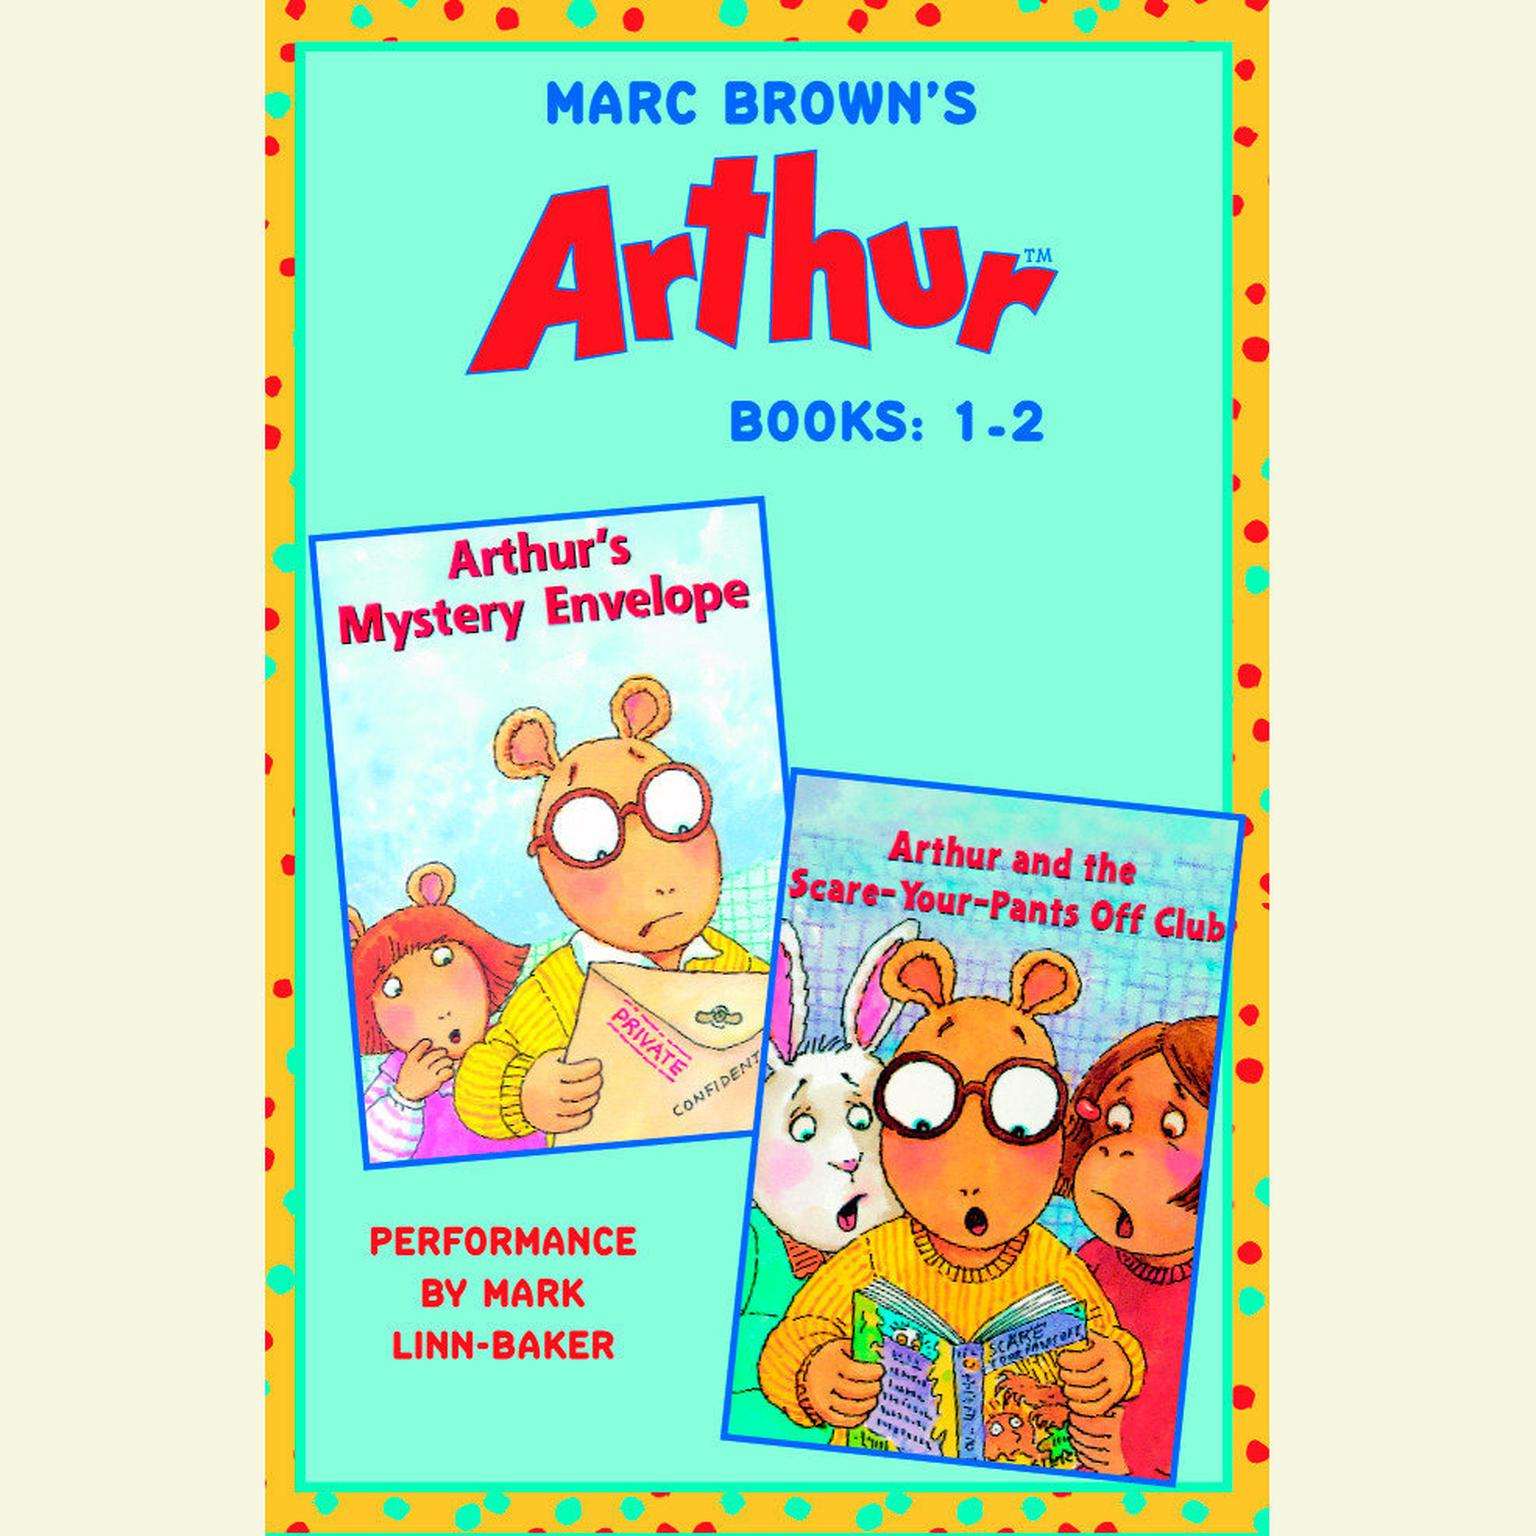 Marc Browns Arthur: Books 1 and 2: Arthurs Mystery Envelope; Arthur and the Scare-Your-Pants-Off Club Audiobook, by Marc Brown